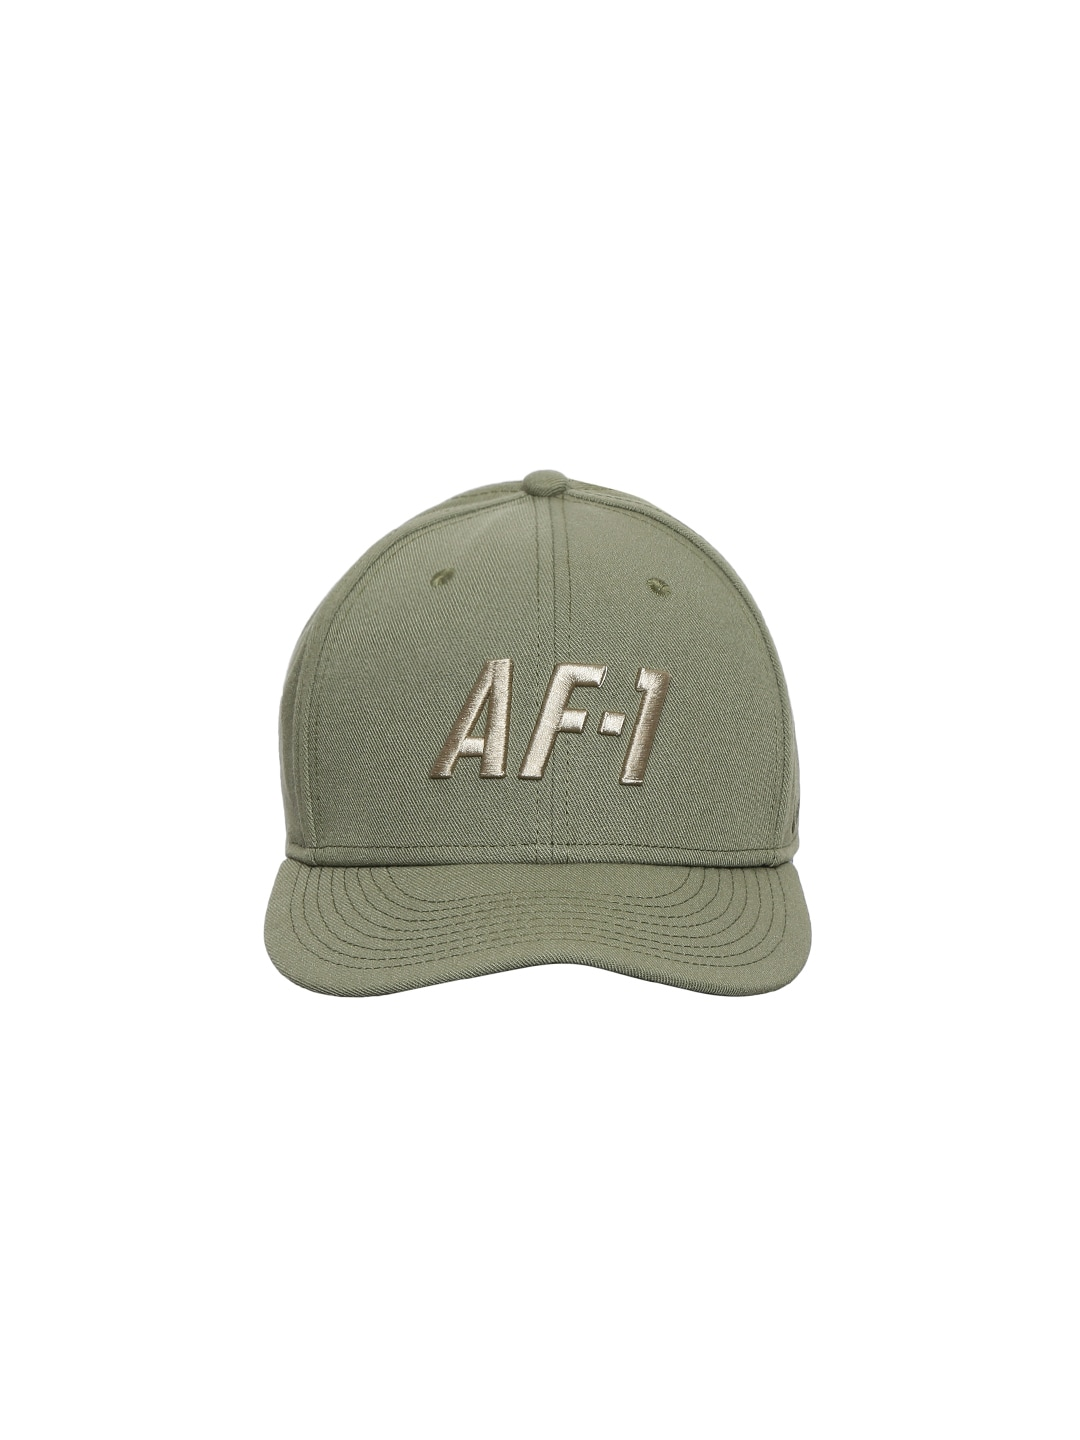 3754b6f7b3d Nike Cap - Buy Nike Caps for Men   Women Online in India